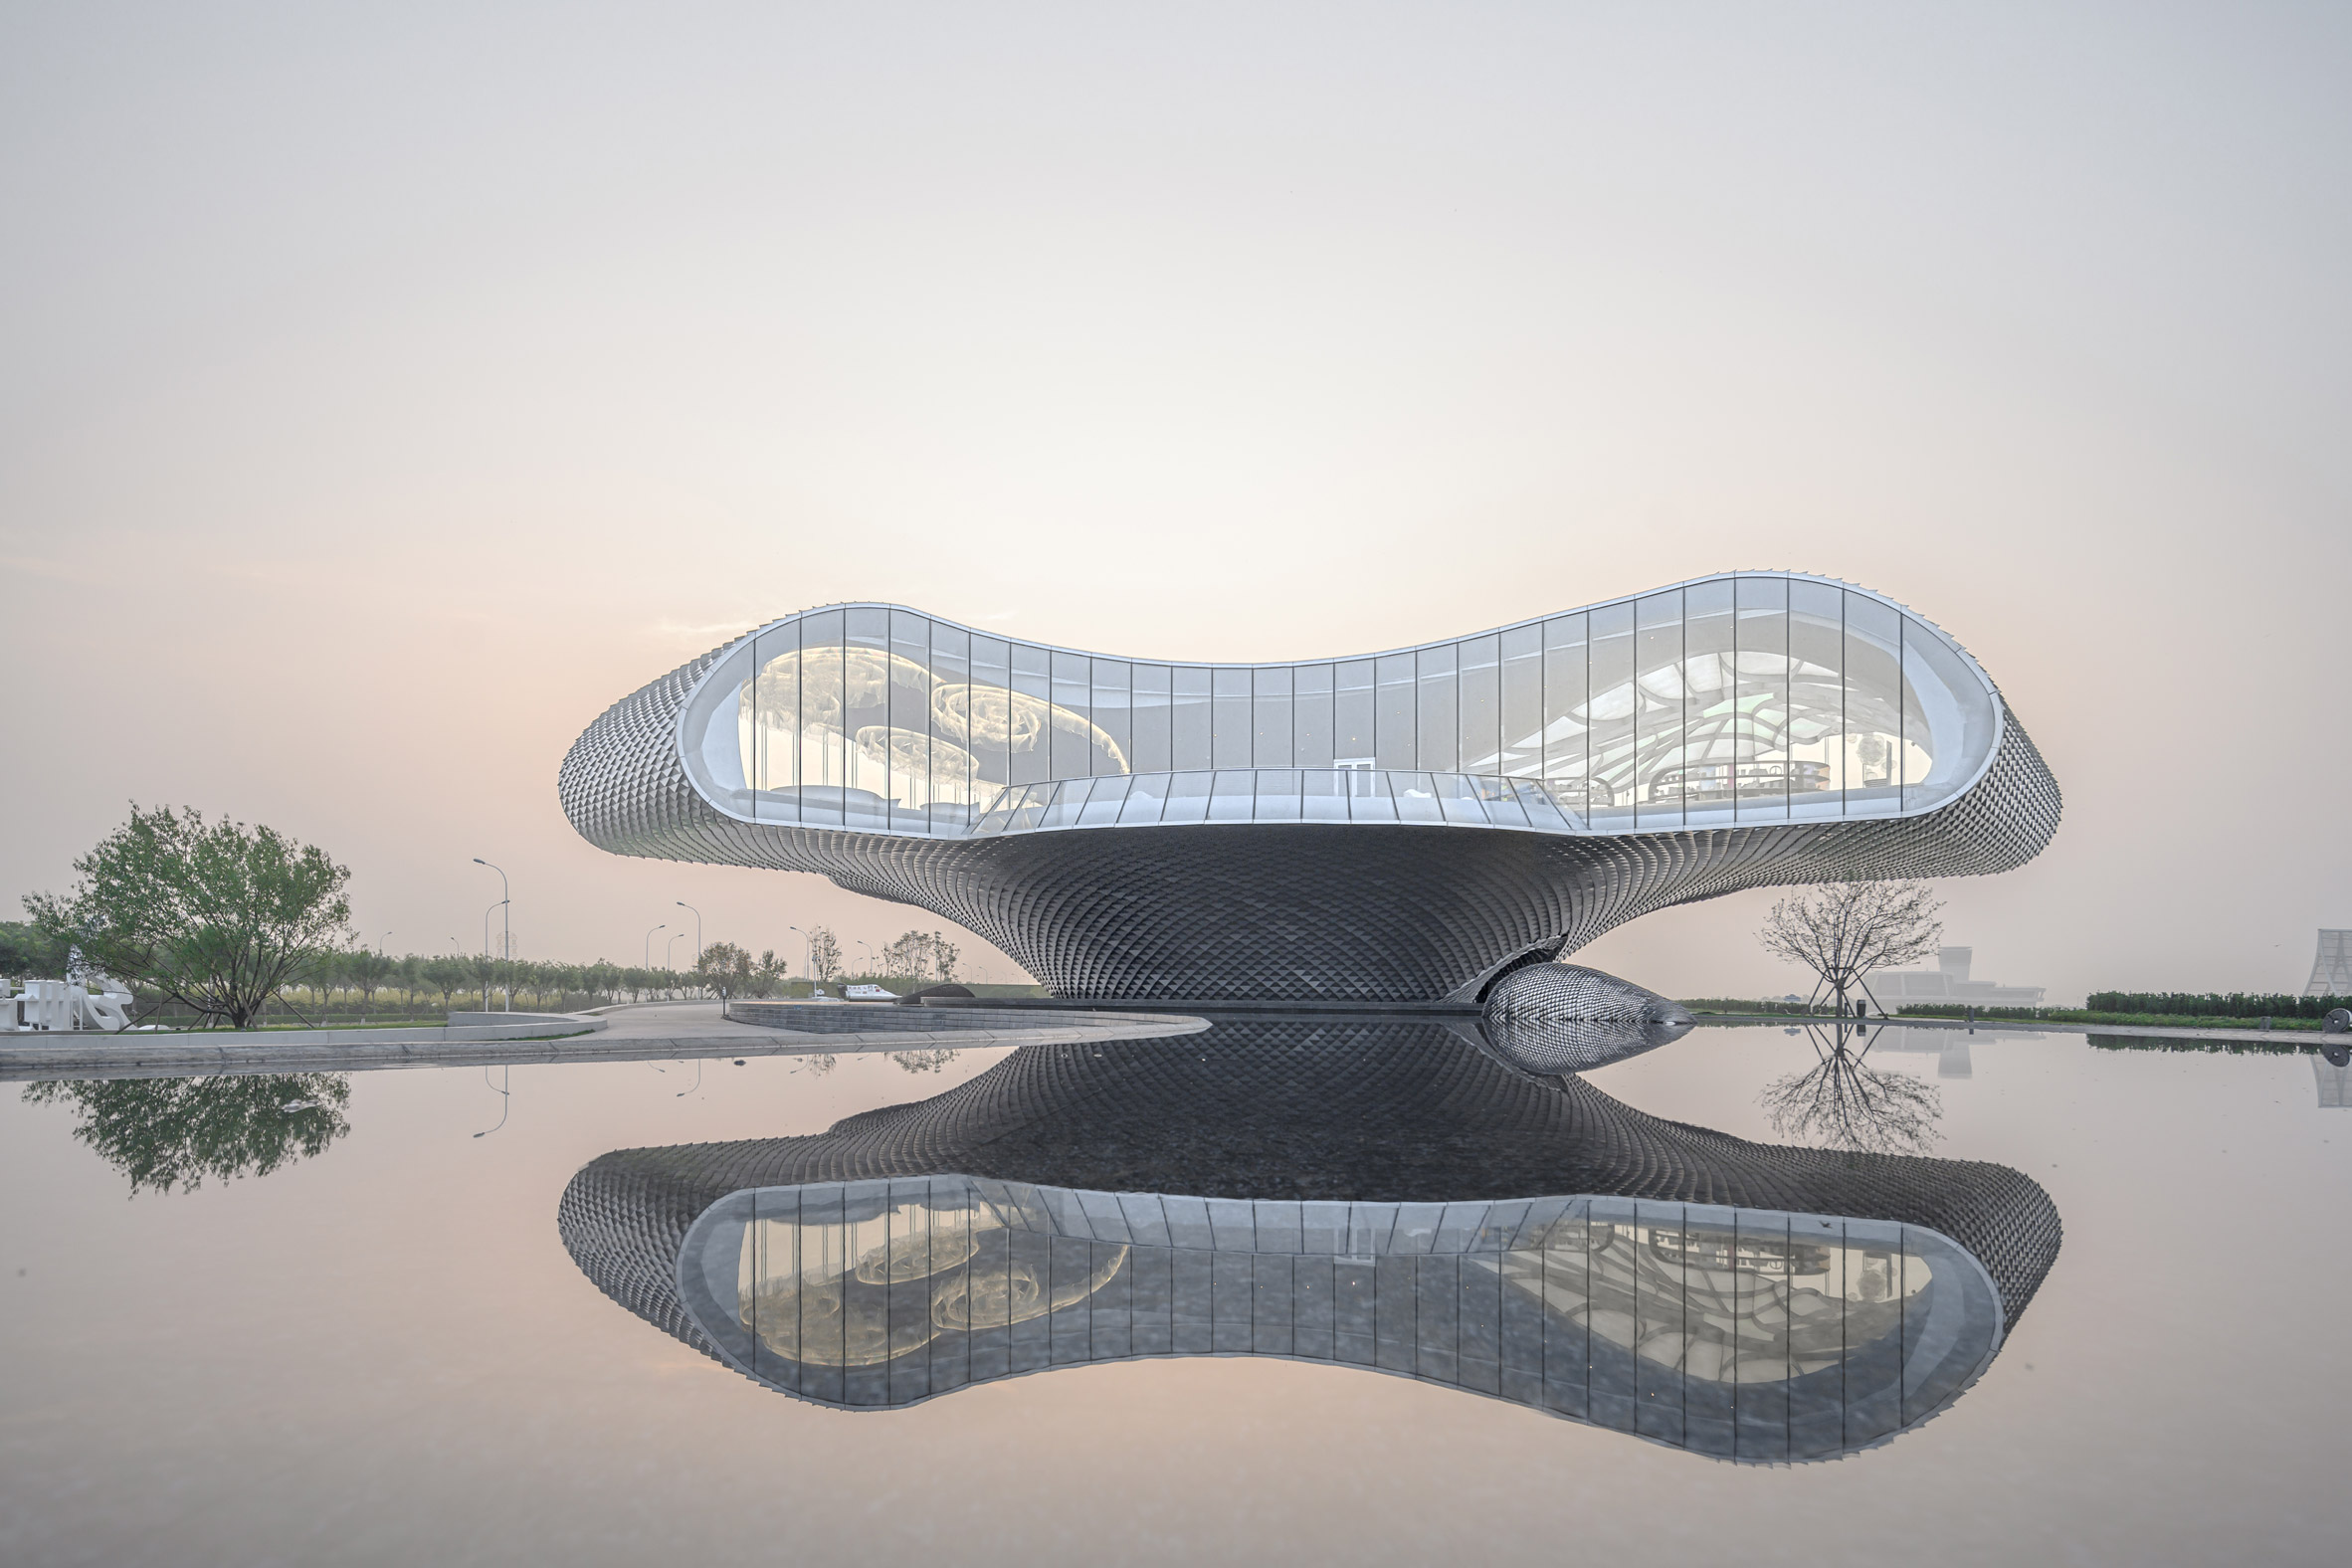 The Wave by Lacime Architects in Tianjin, China